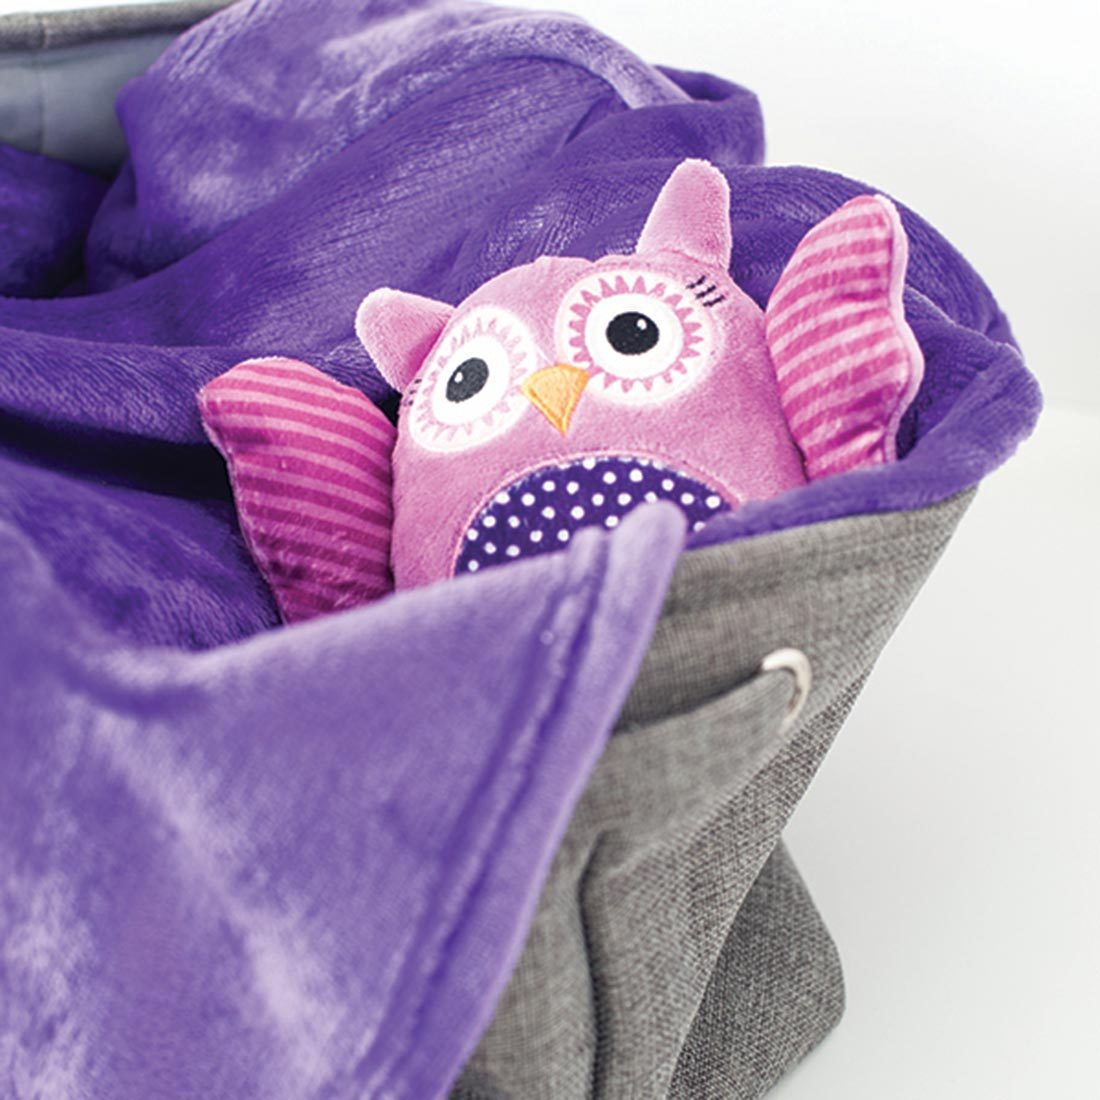 ZOOCCHINI Baby Buddy Stroller Blanket - Olive the Owl